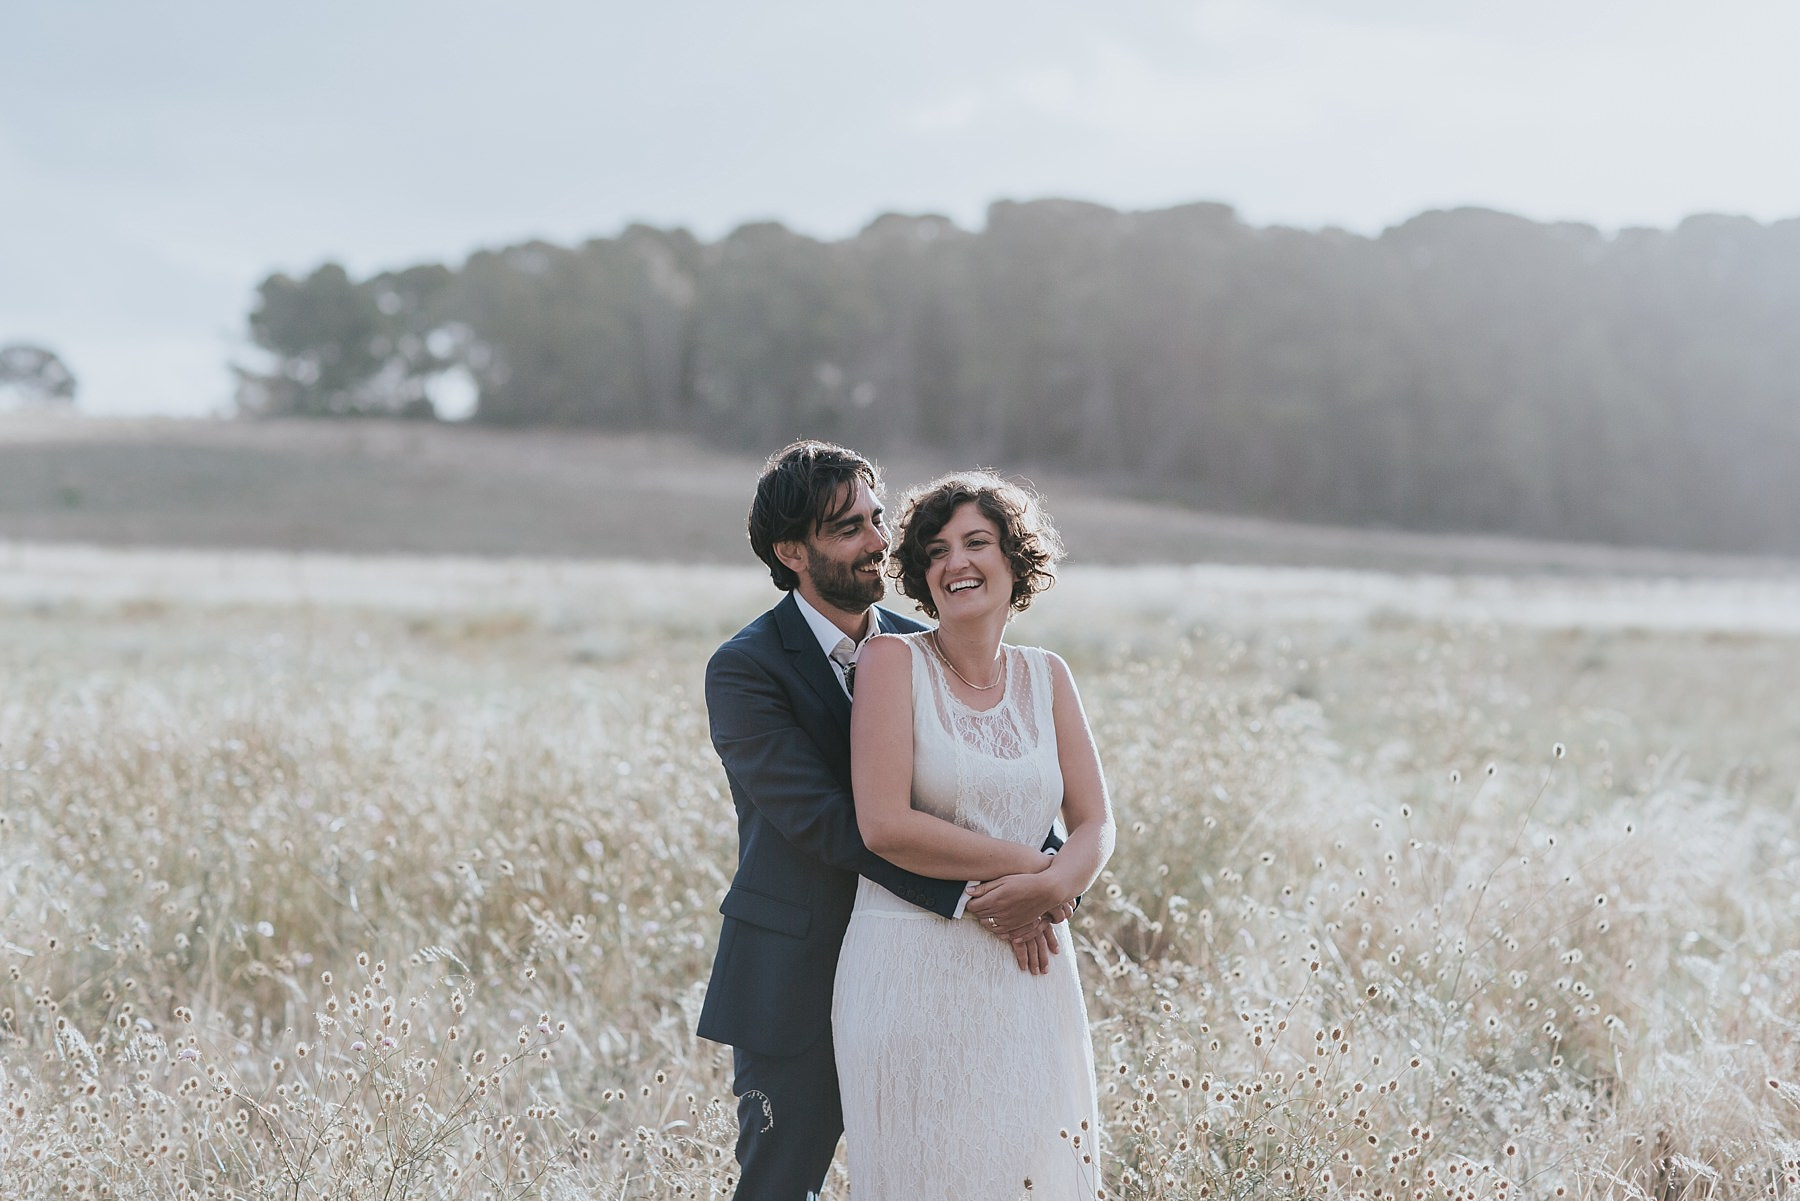 wedding day photography in south australia